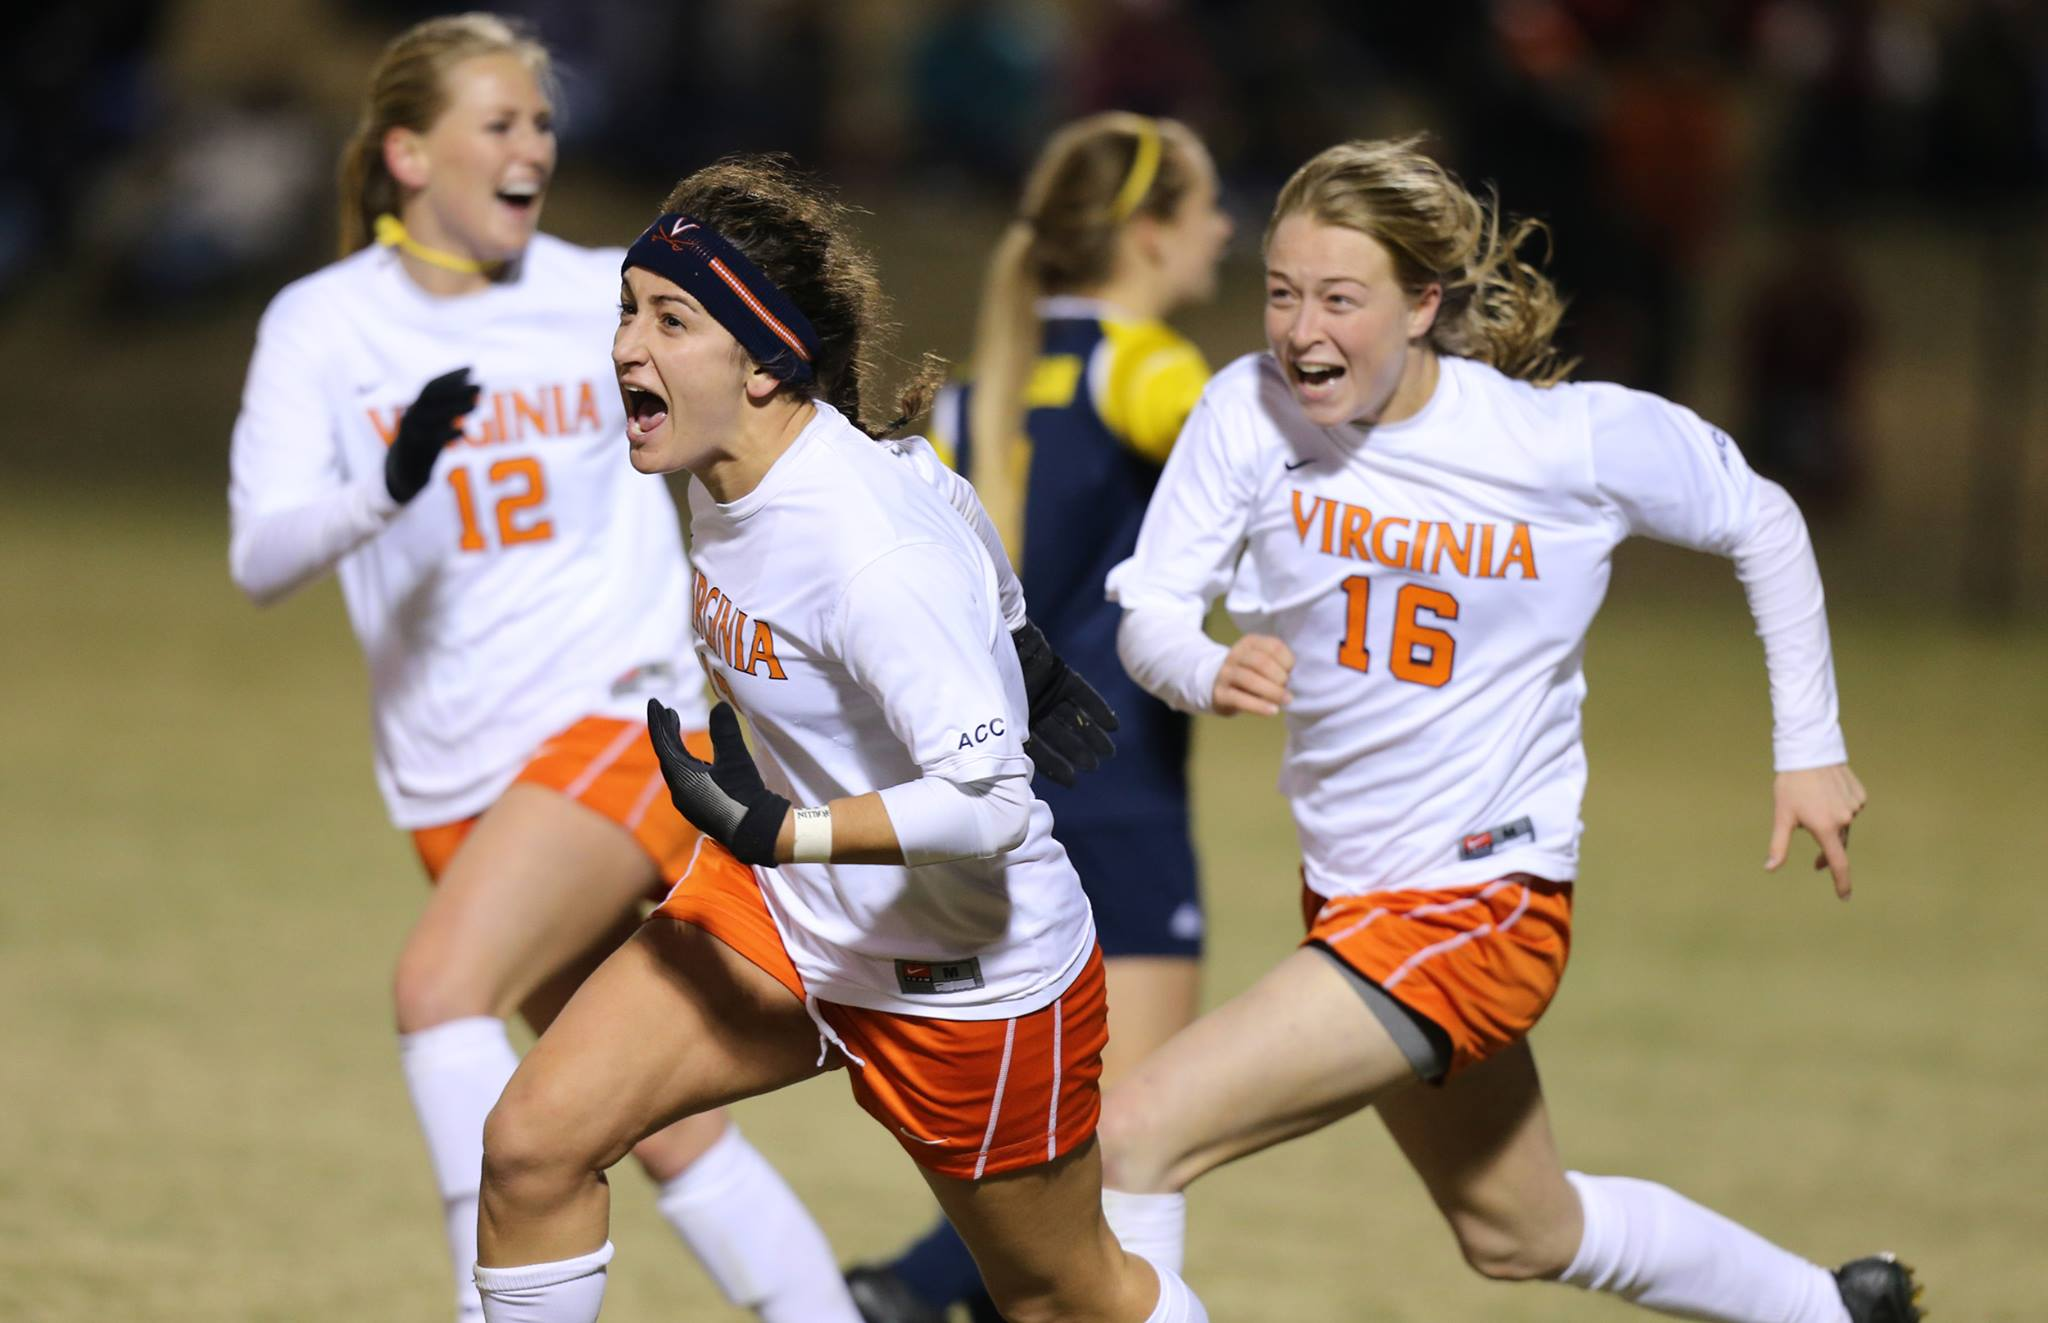 Molly Menchel was drafted by the Spirit after playing for the club's reserve team last season. Could it be a trend in the making? (Photo courtesy University of Virginia.)